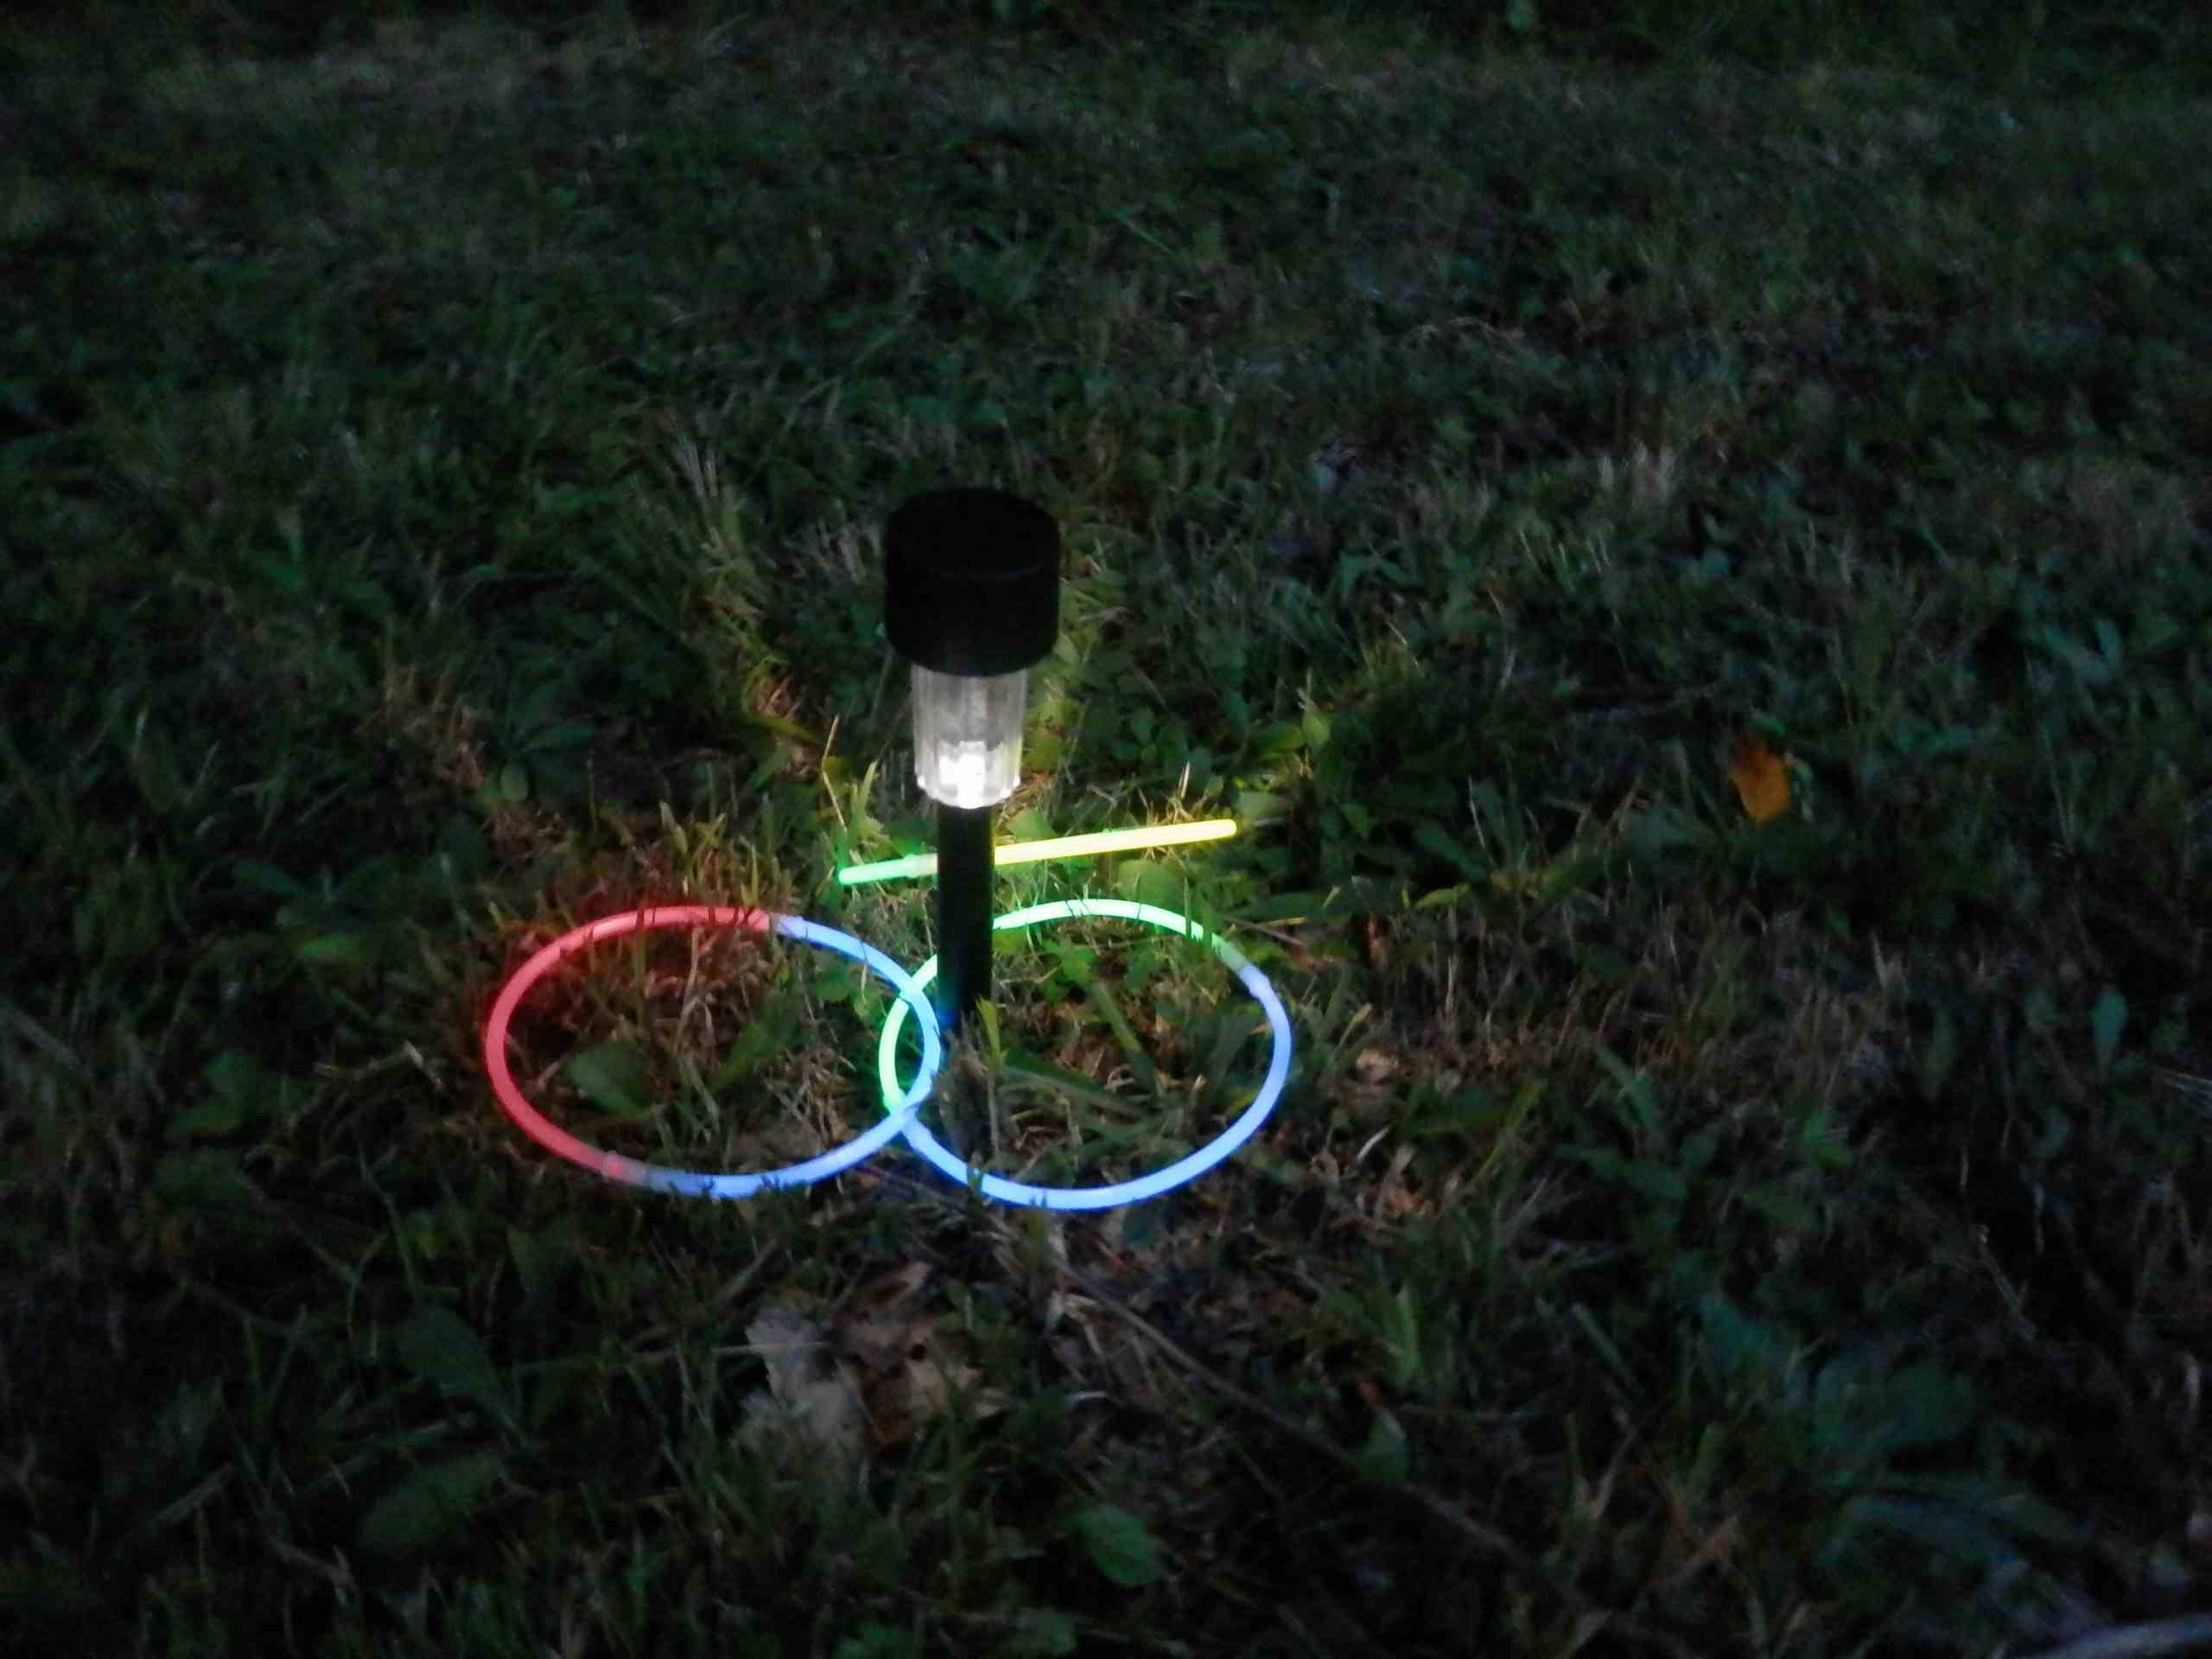 Ring toss game at nighttime.